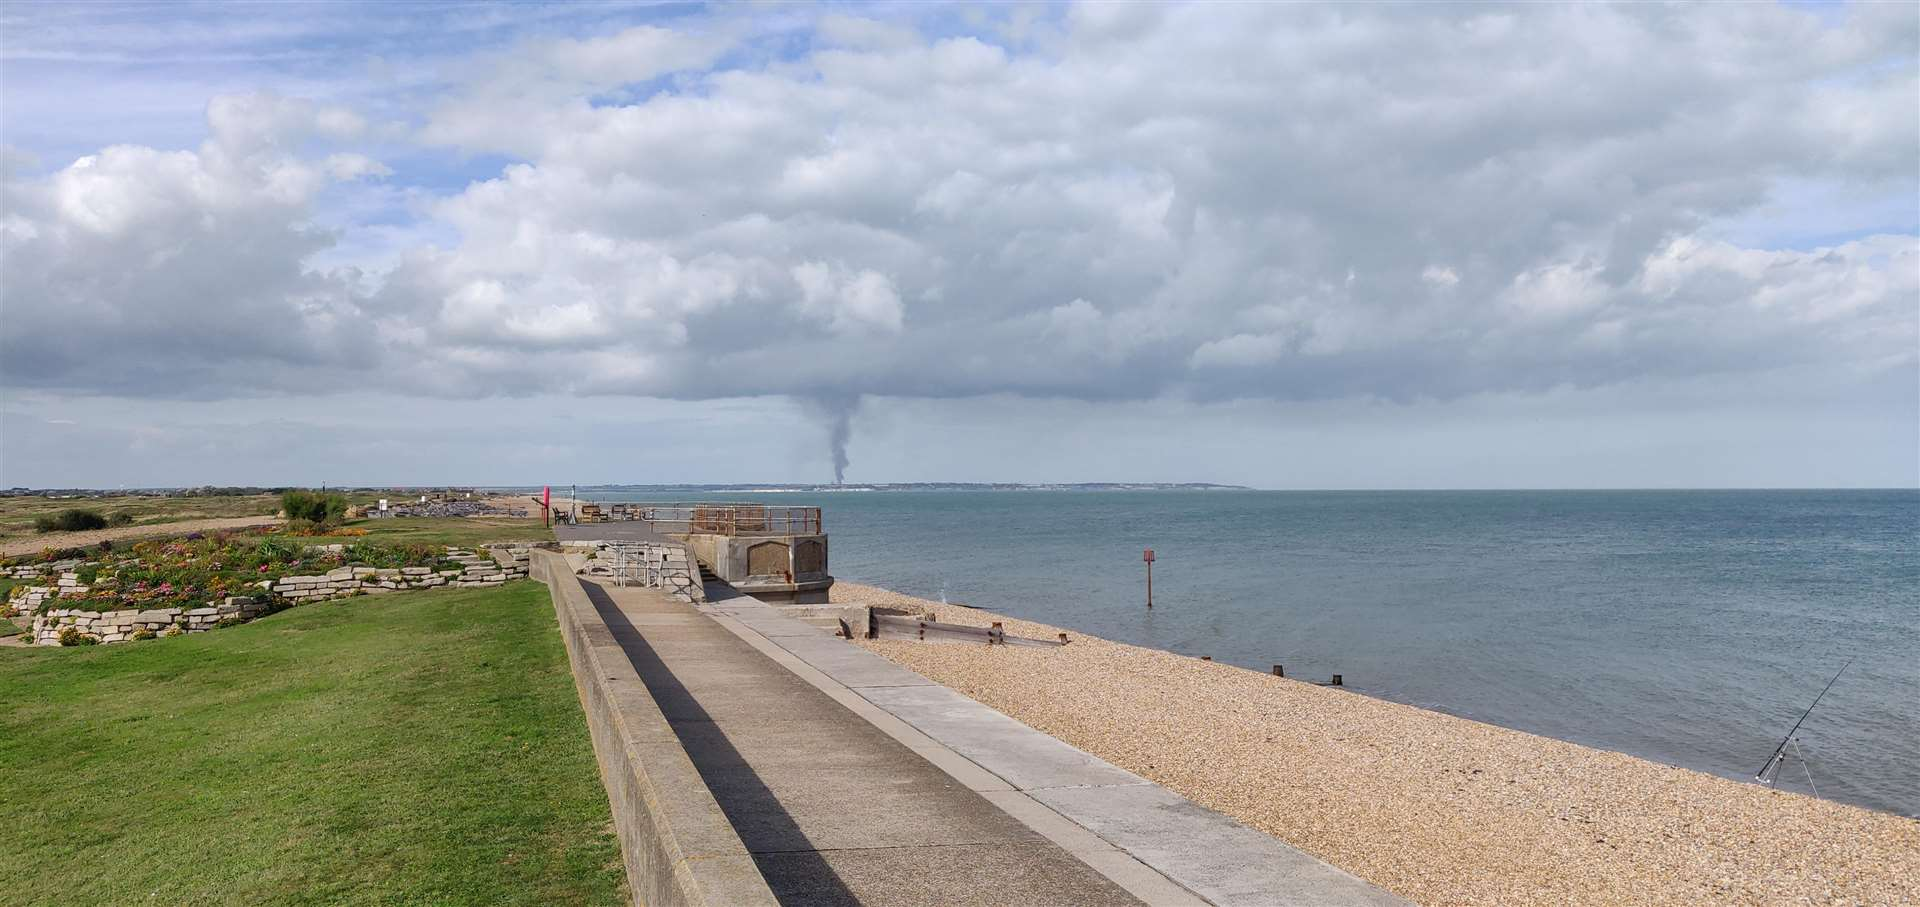 Smoke - The plume could be seen from Deal (4189561)